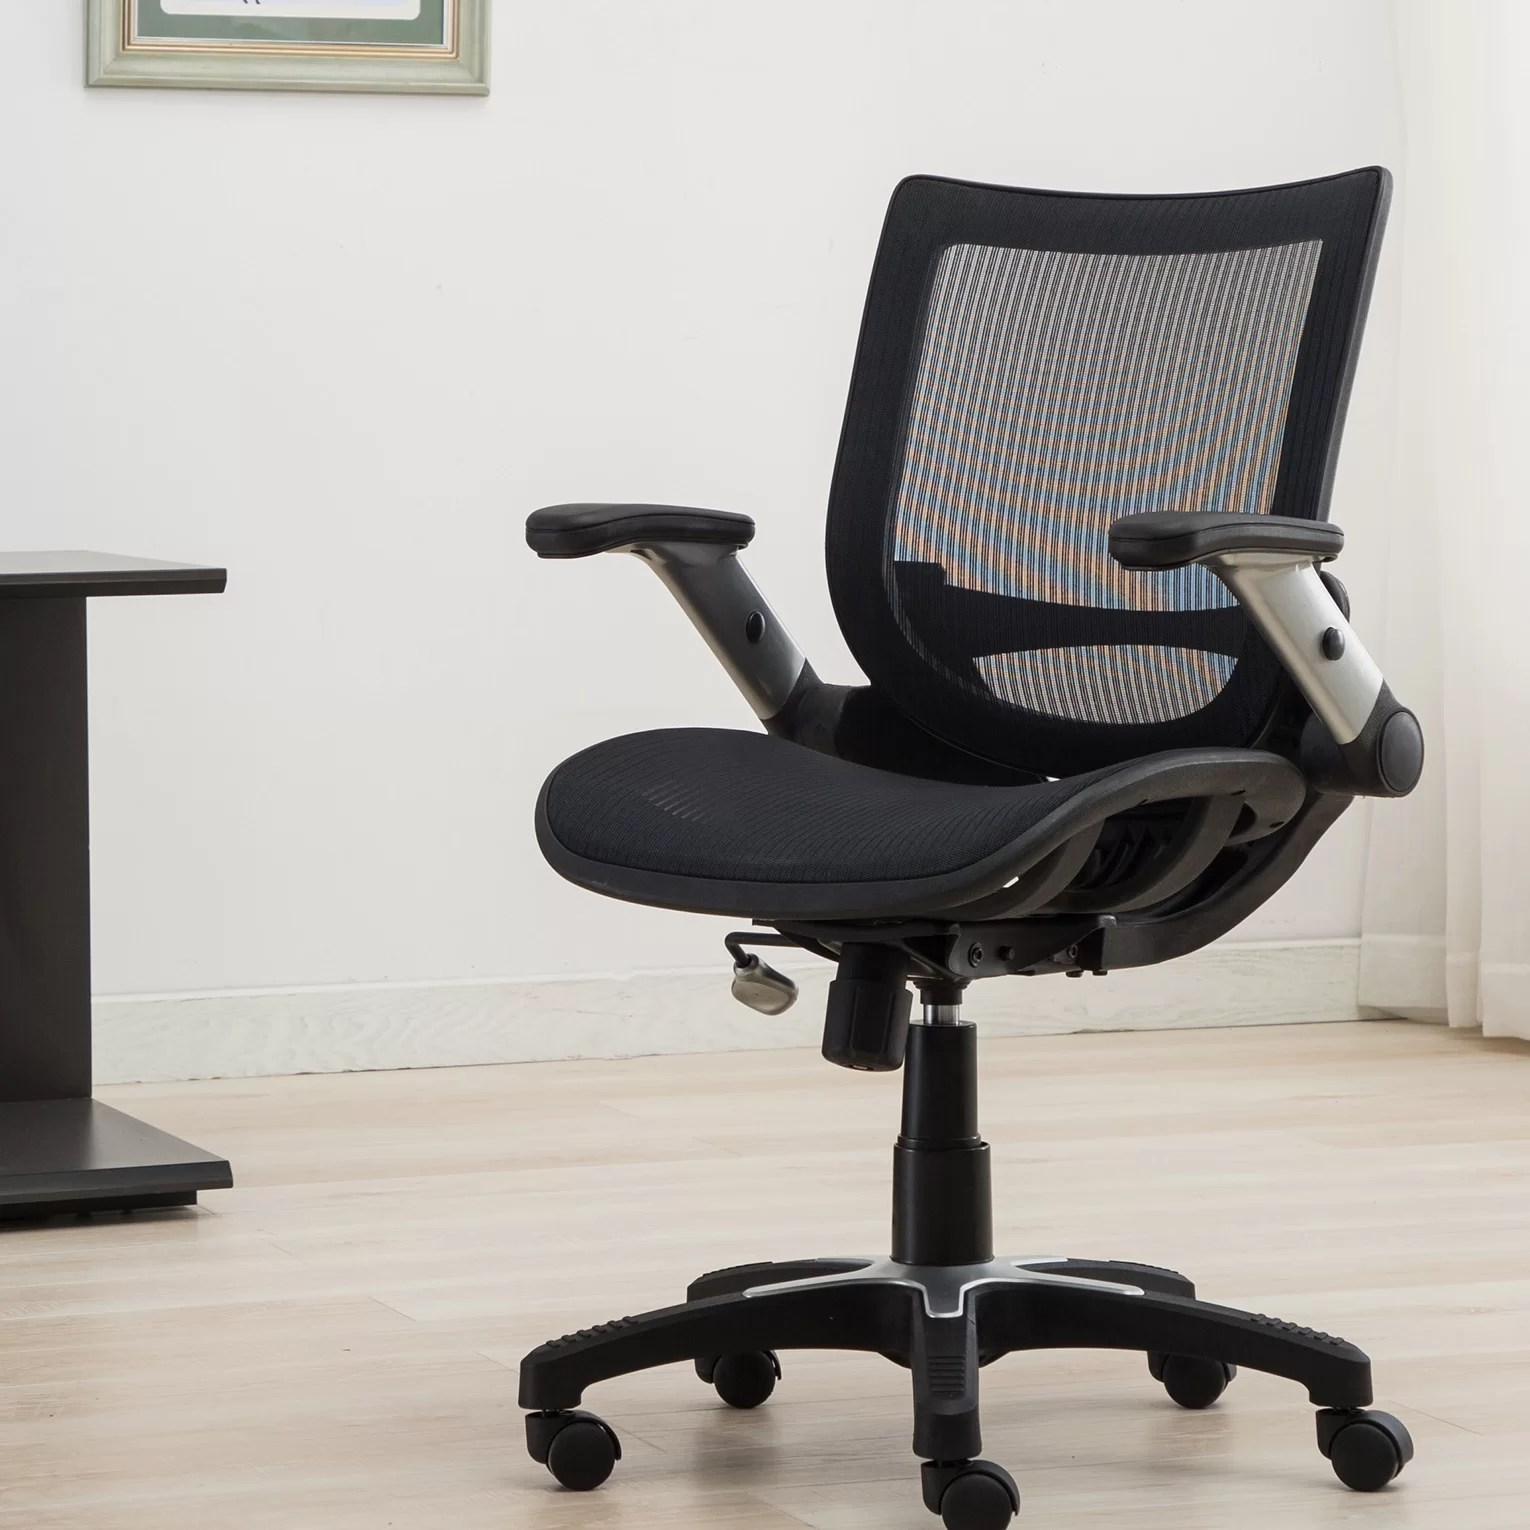 How To Adjust Office Chair Entrada Mid Back Ergonomic Mesh Task Chair